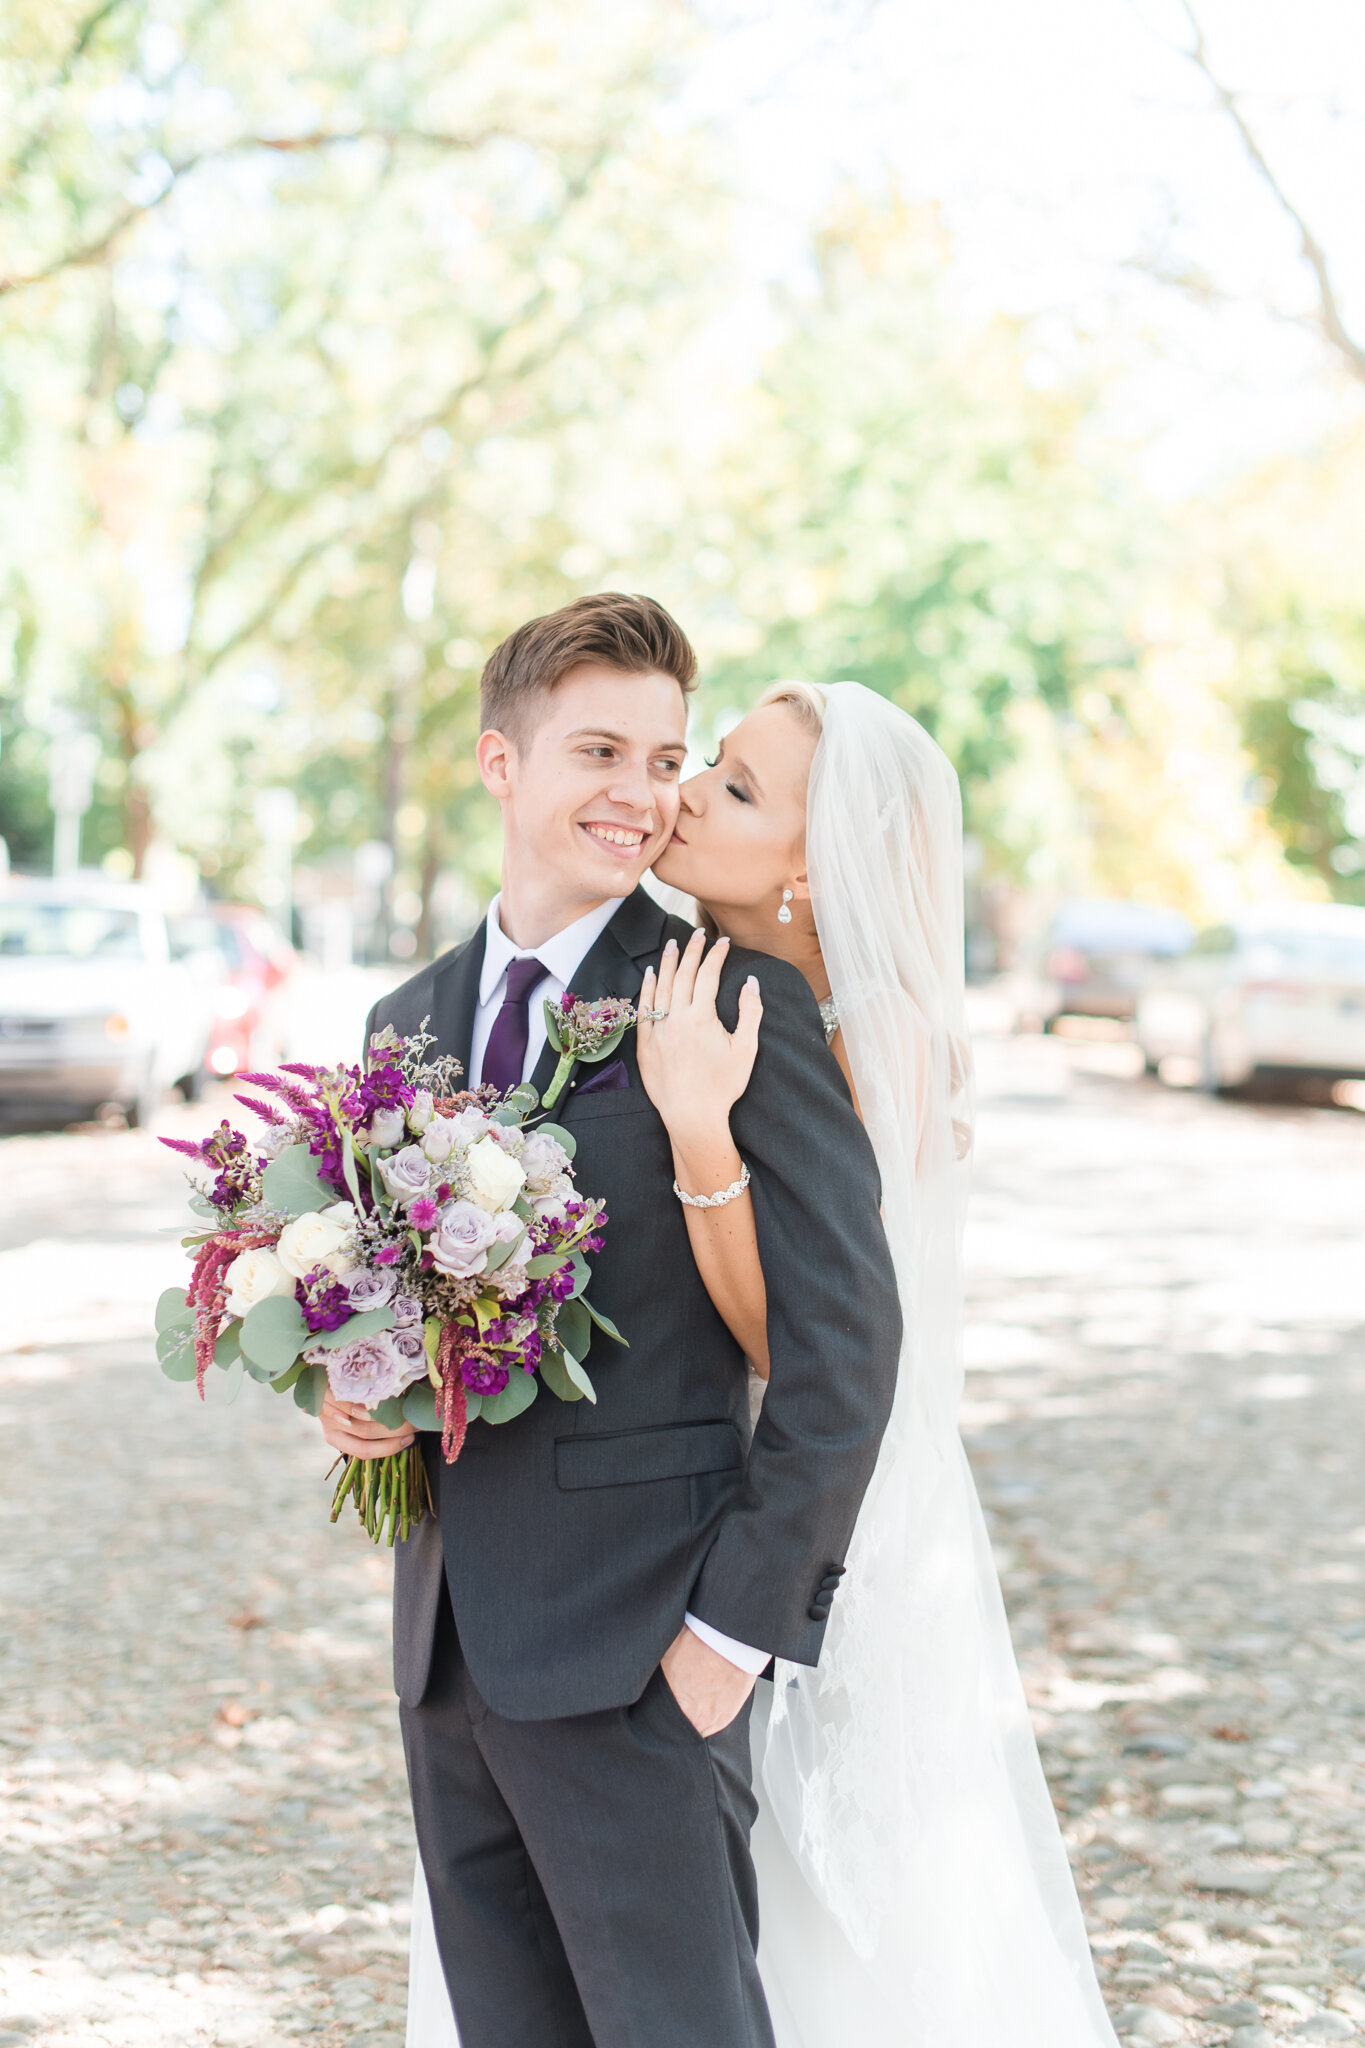 Downtown Indianapolis Wedding at Cyrus Place6984.jpg